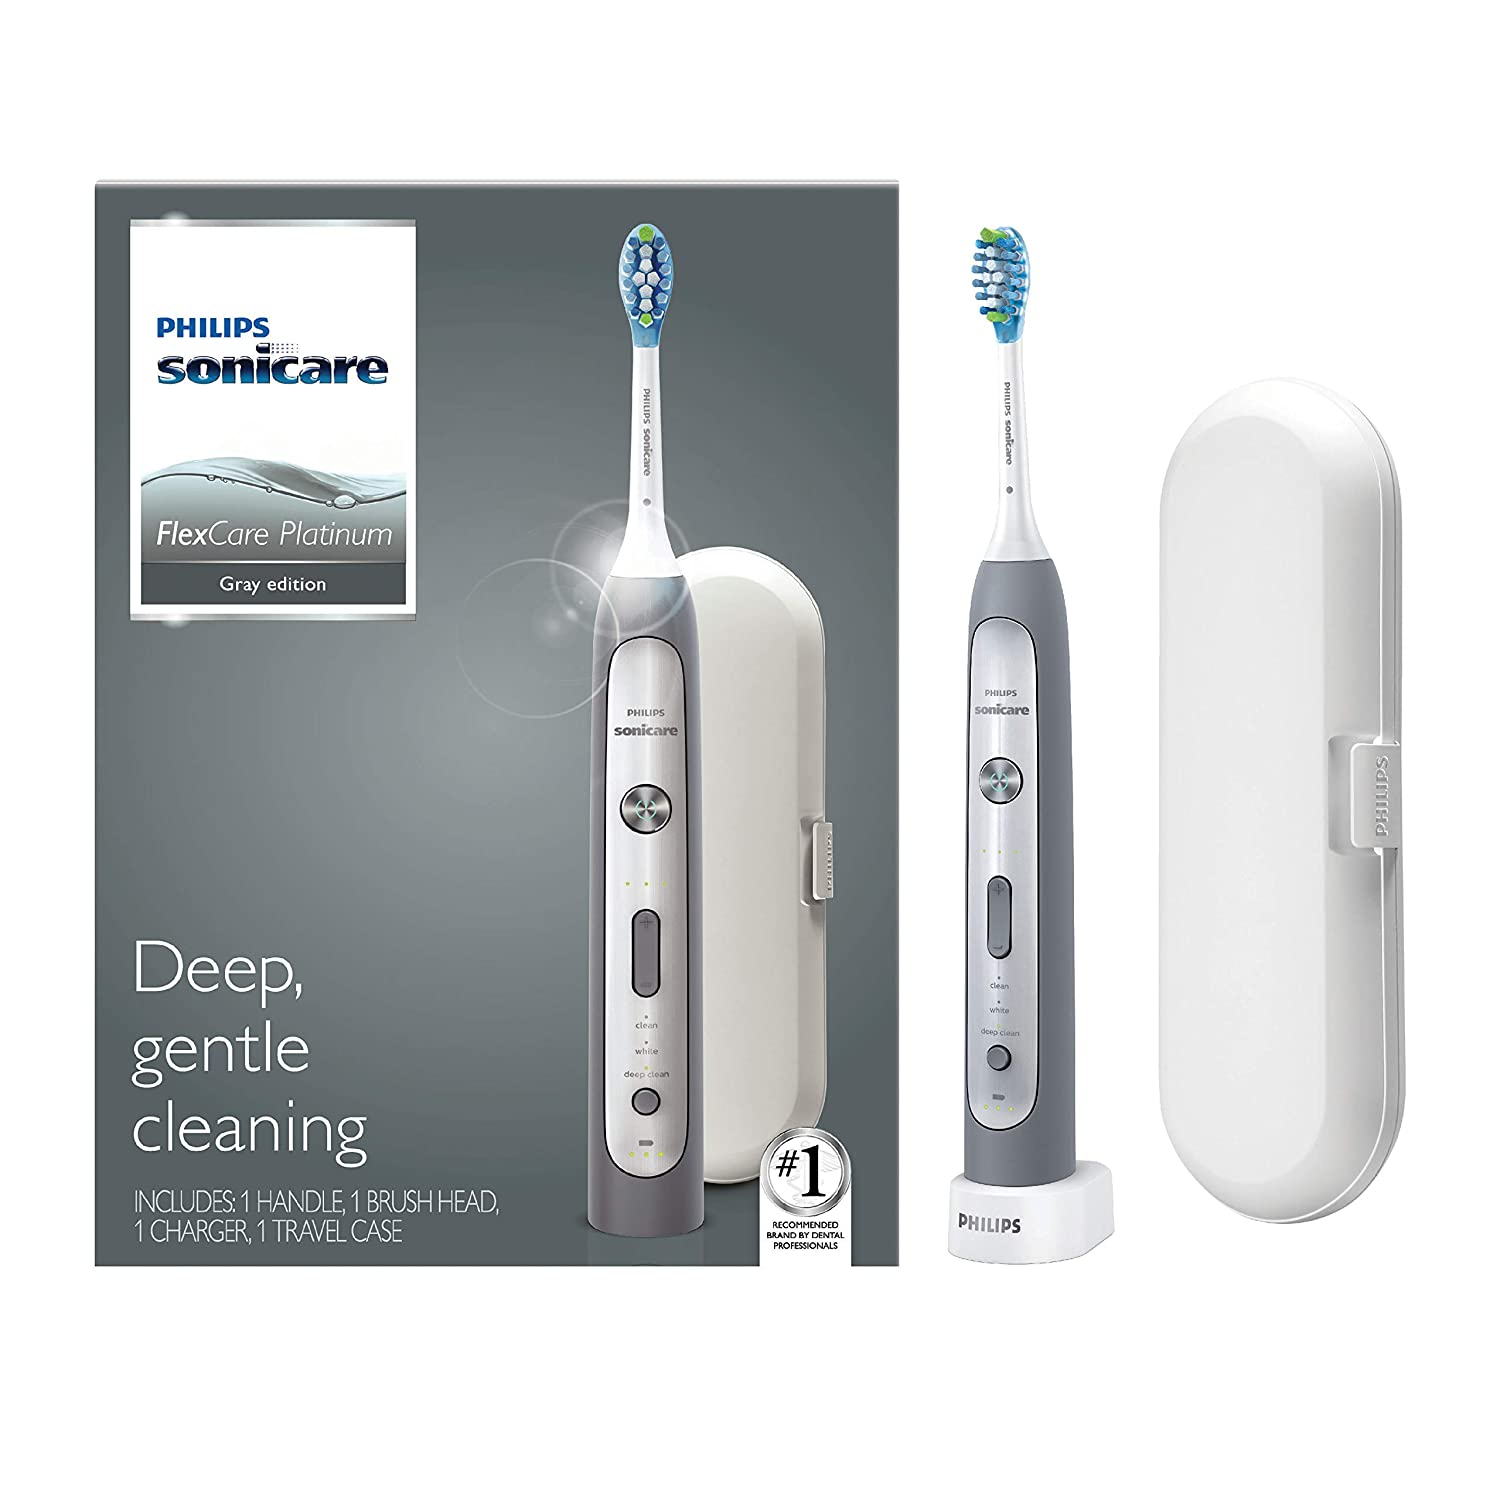 Philips Sonicare Flexcare Platinum, Electric Rechargeable Toothbrush